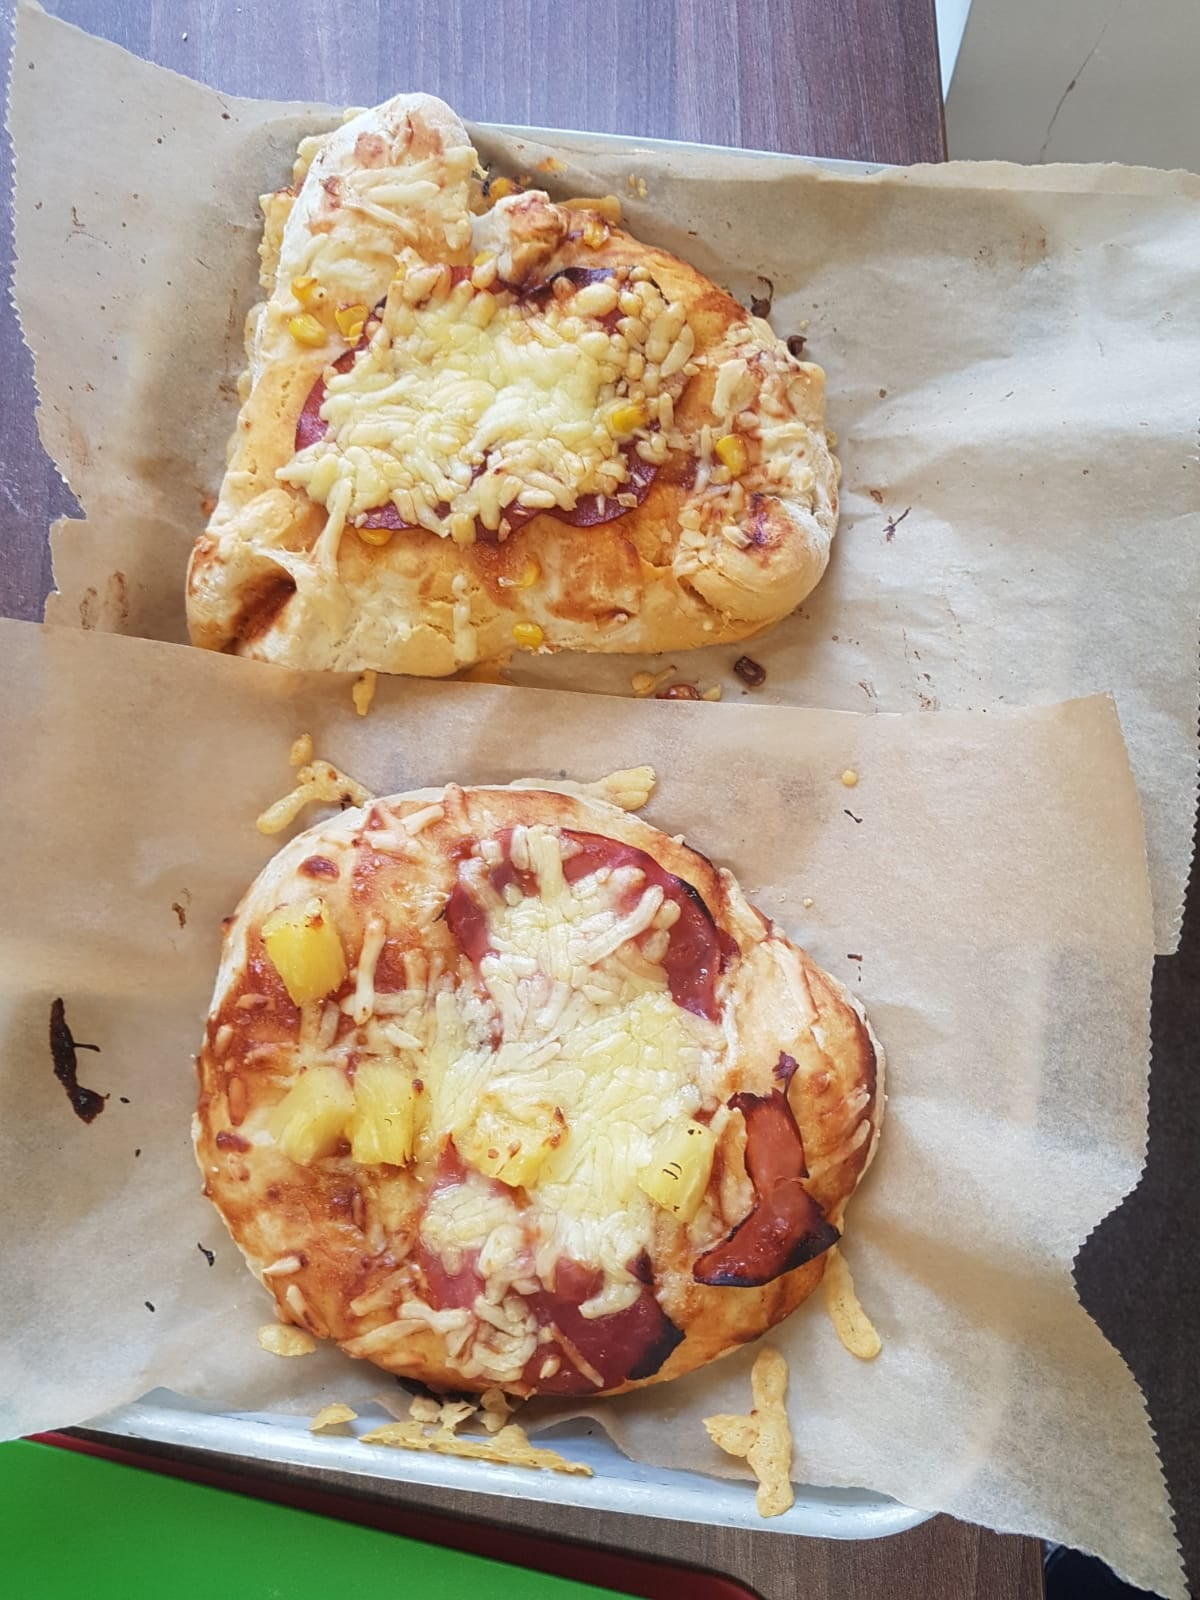 Homemade pizza made by Thrive students at The Mix Stowmarket